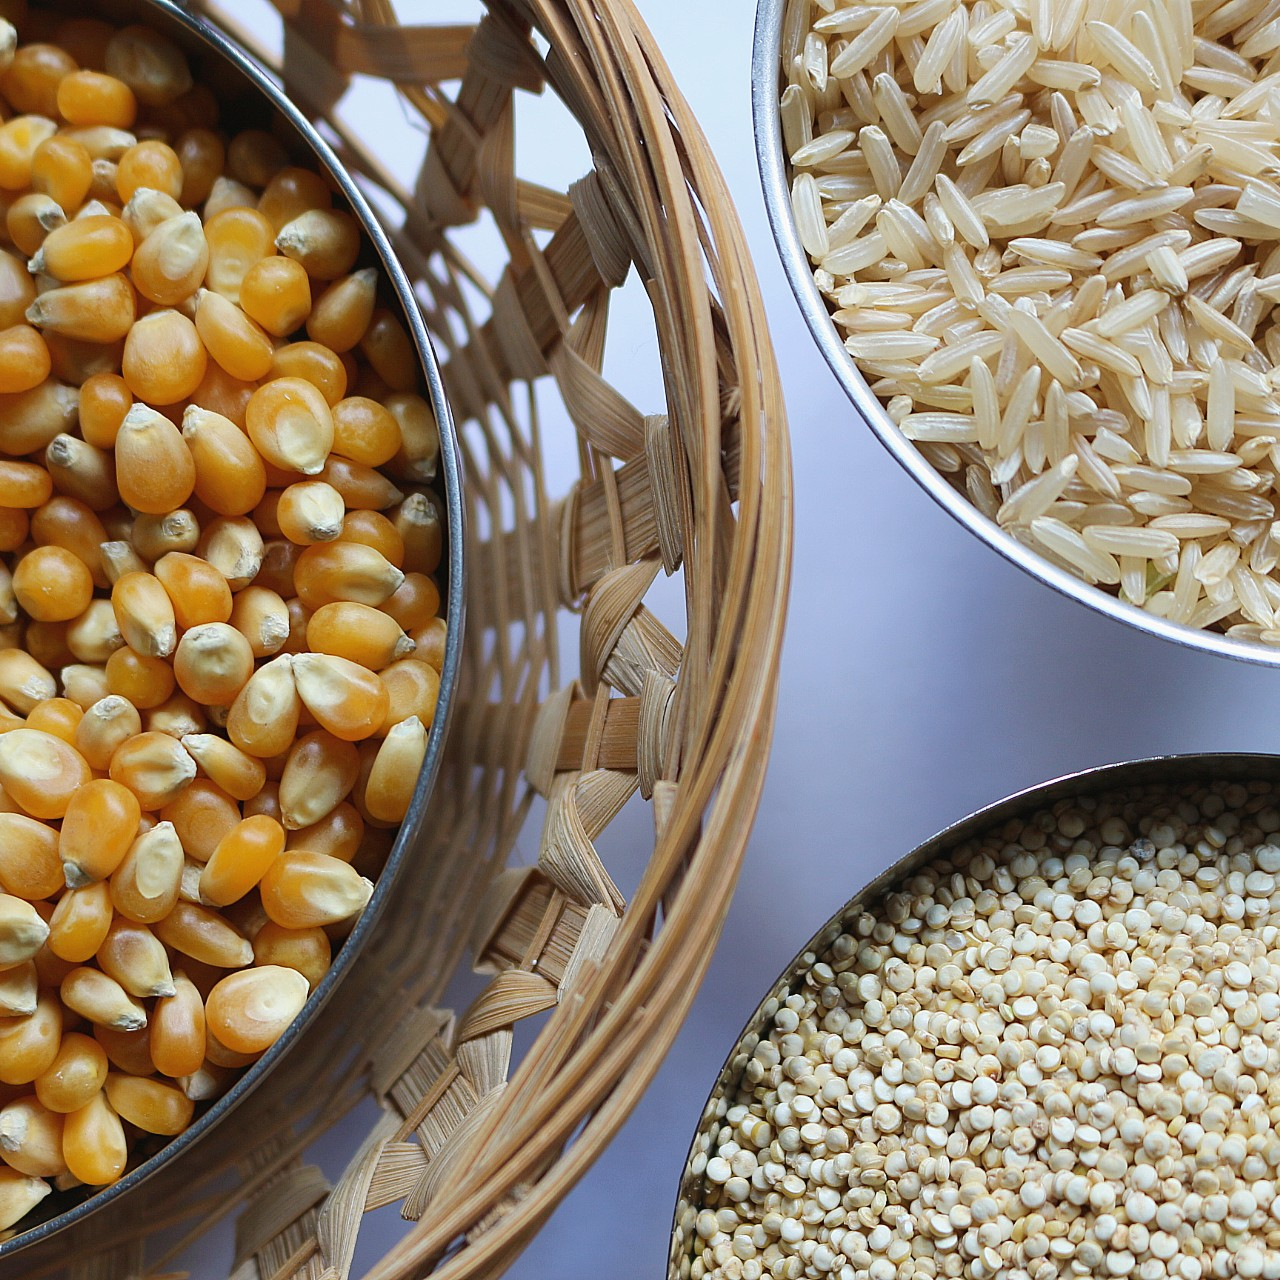 Rice, corn and grains at Ganesha Wholefoods Online